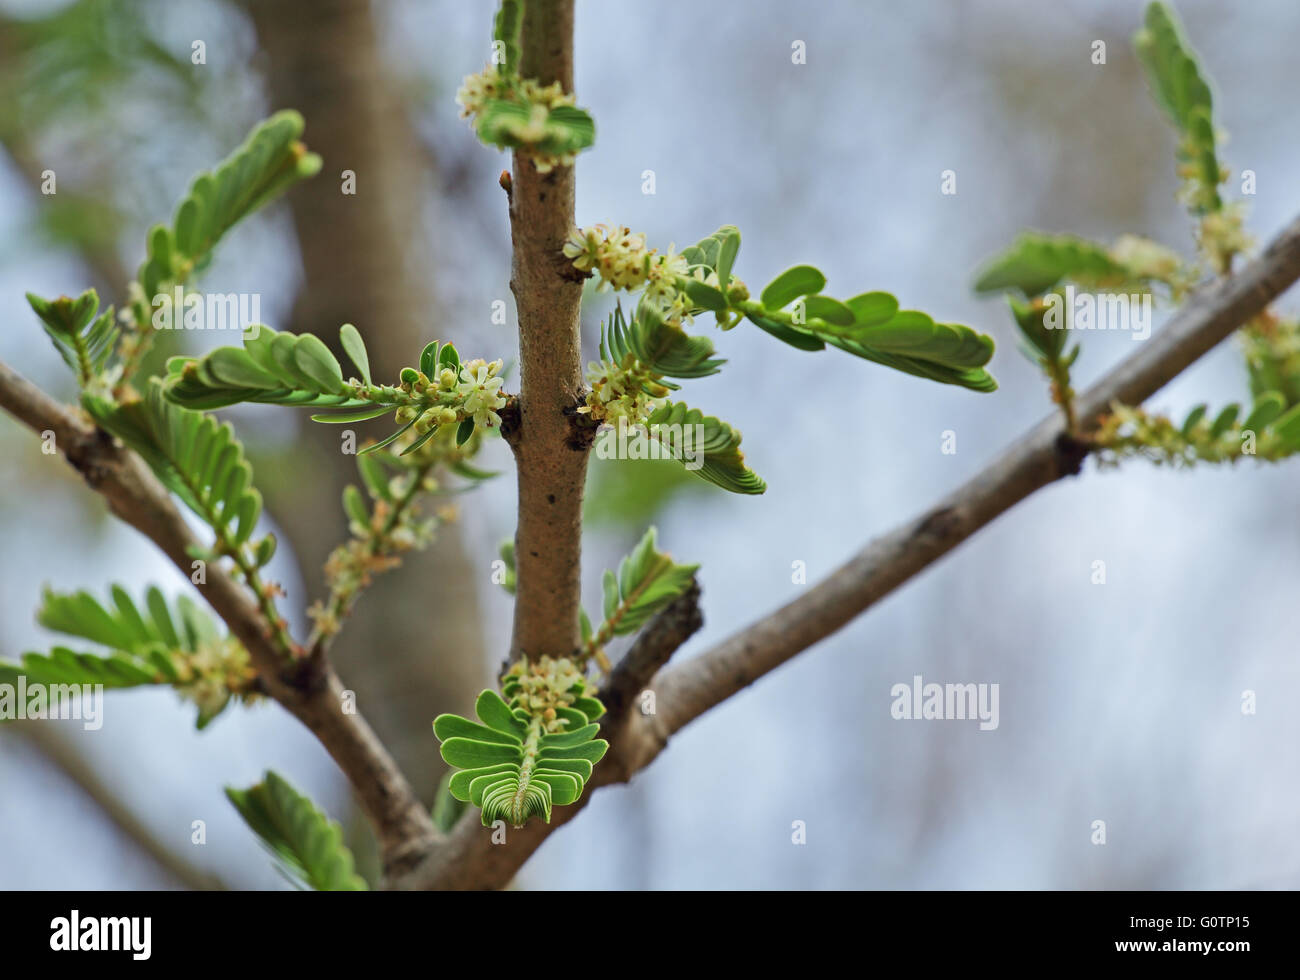 Flowering Indian gooseberry, Phyllanthus emblica, plant. Also called amla in India - Stock Image